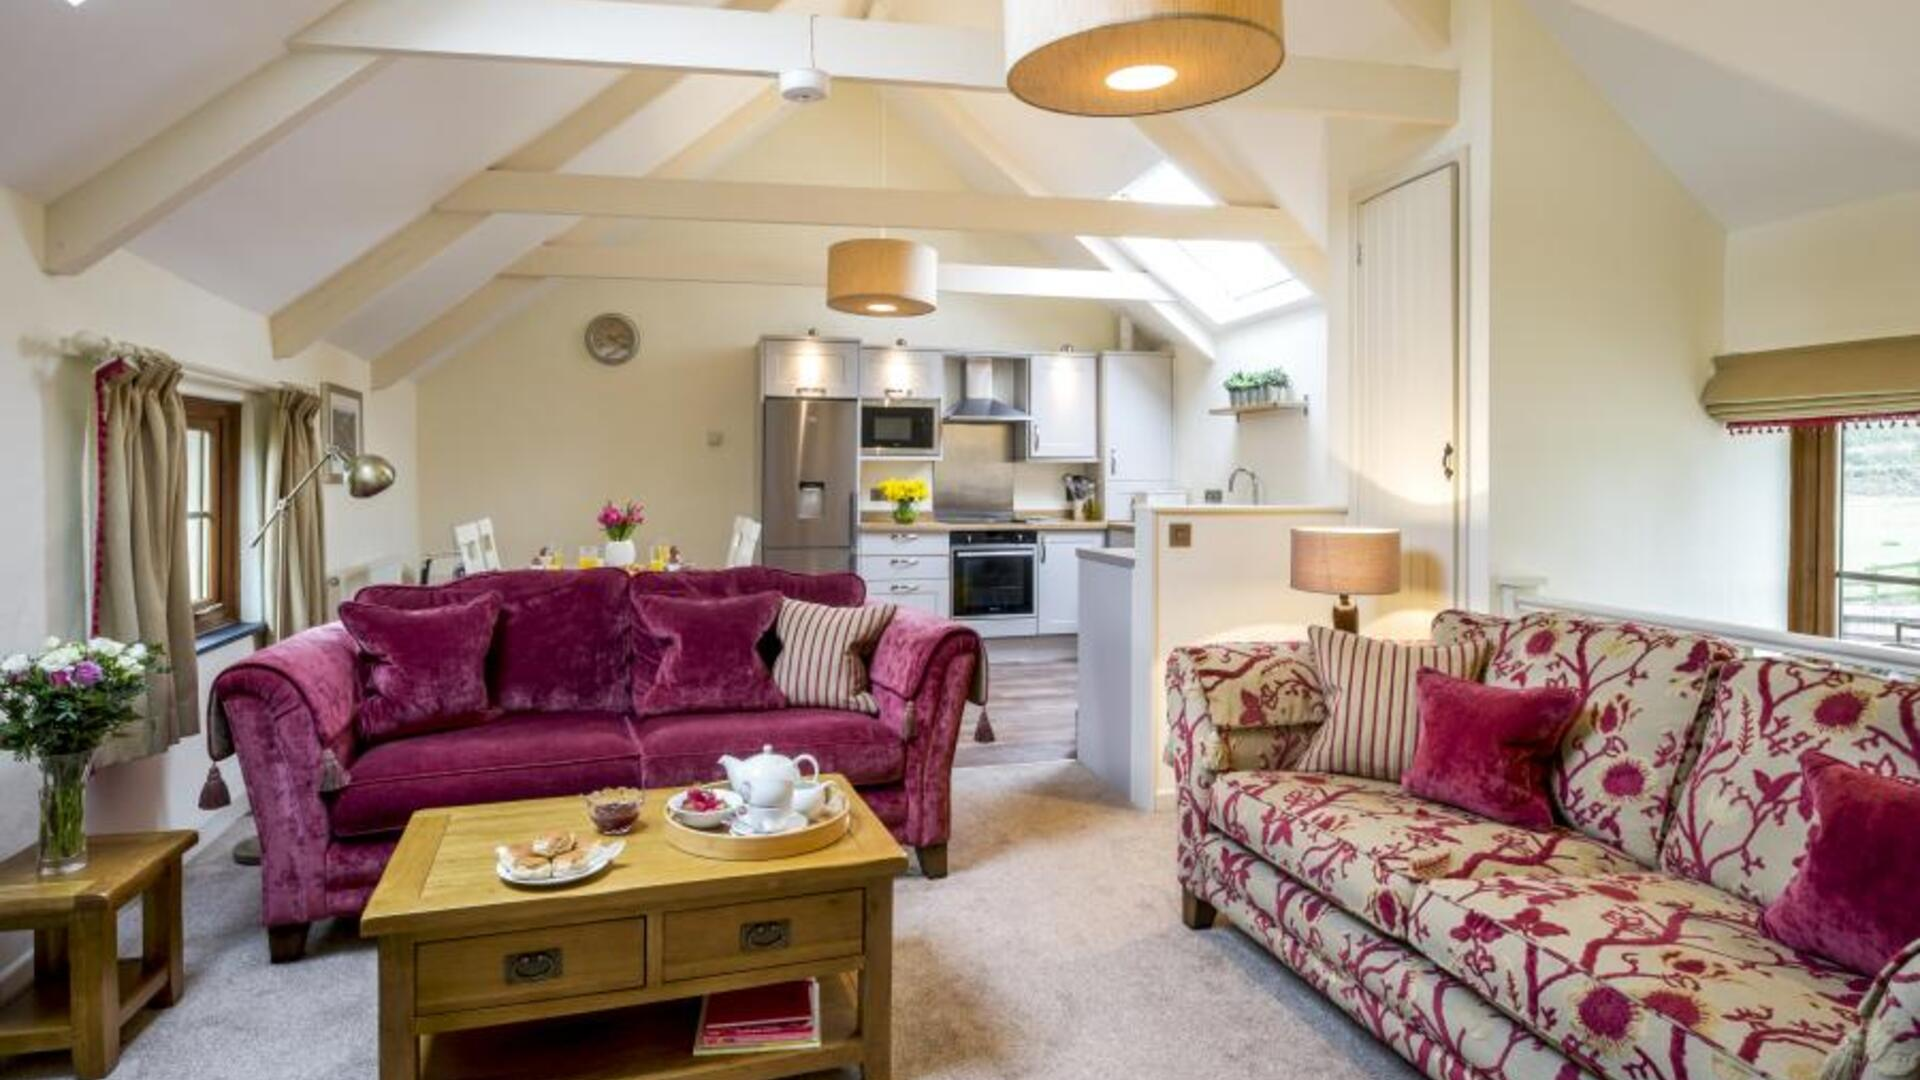 Cornwall family friendly cottage with pool � JJCL